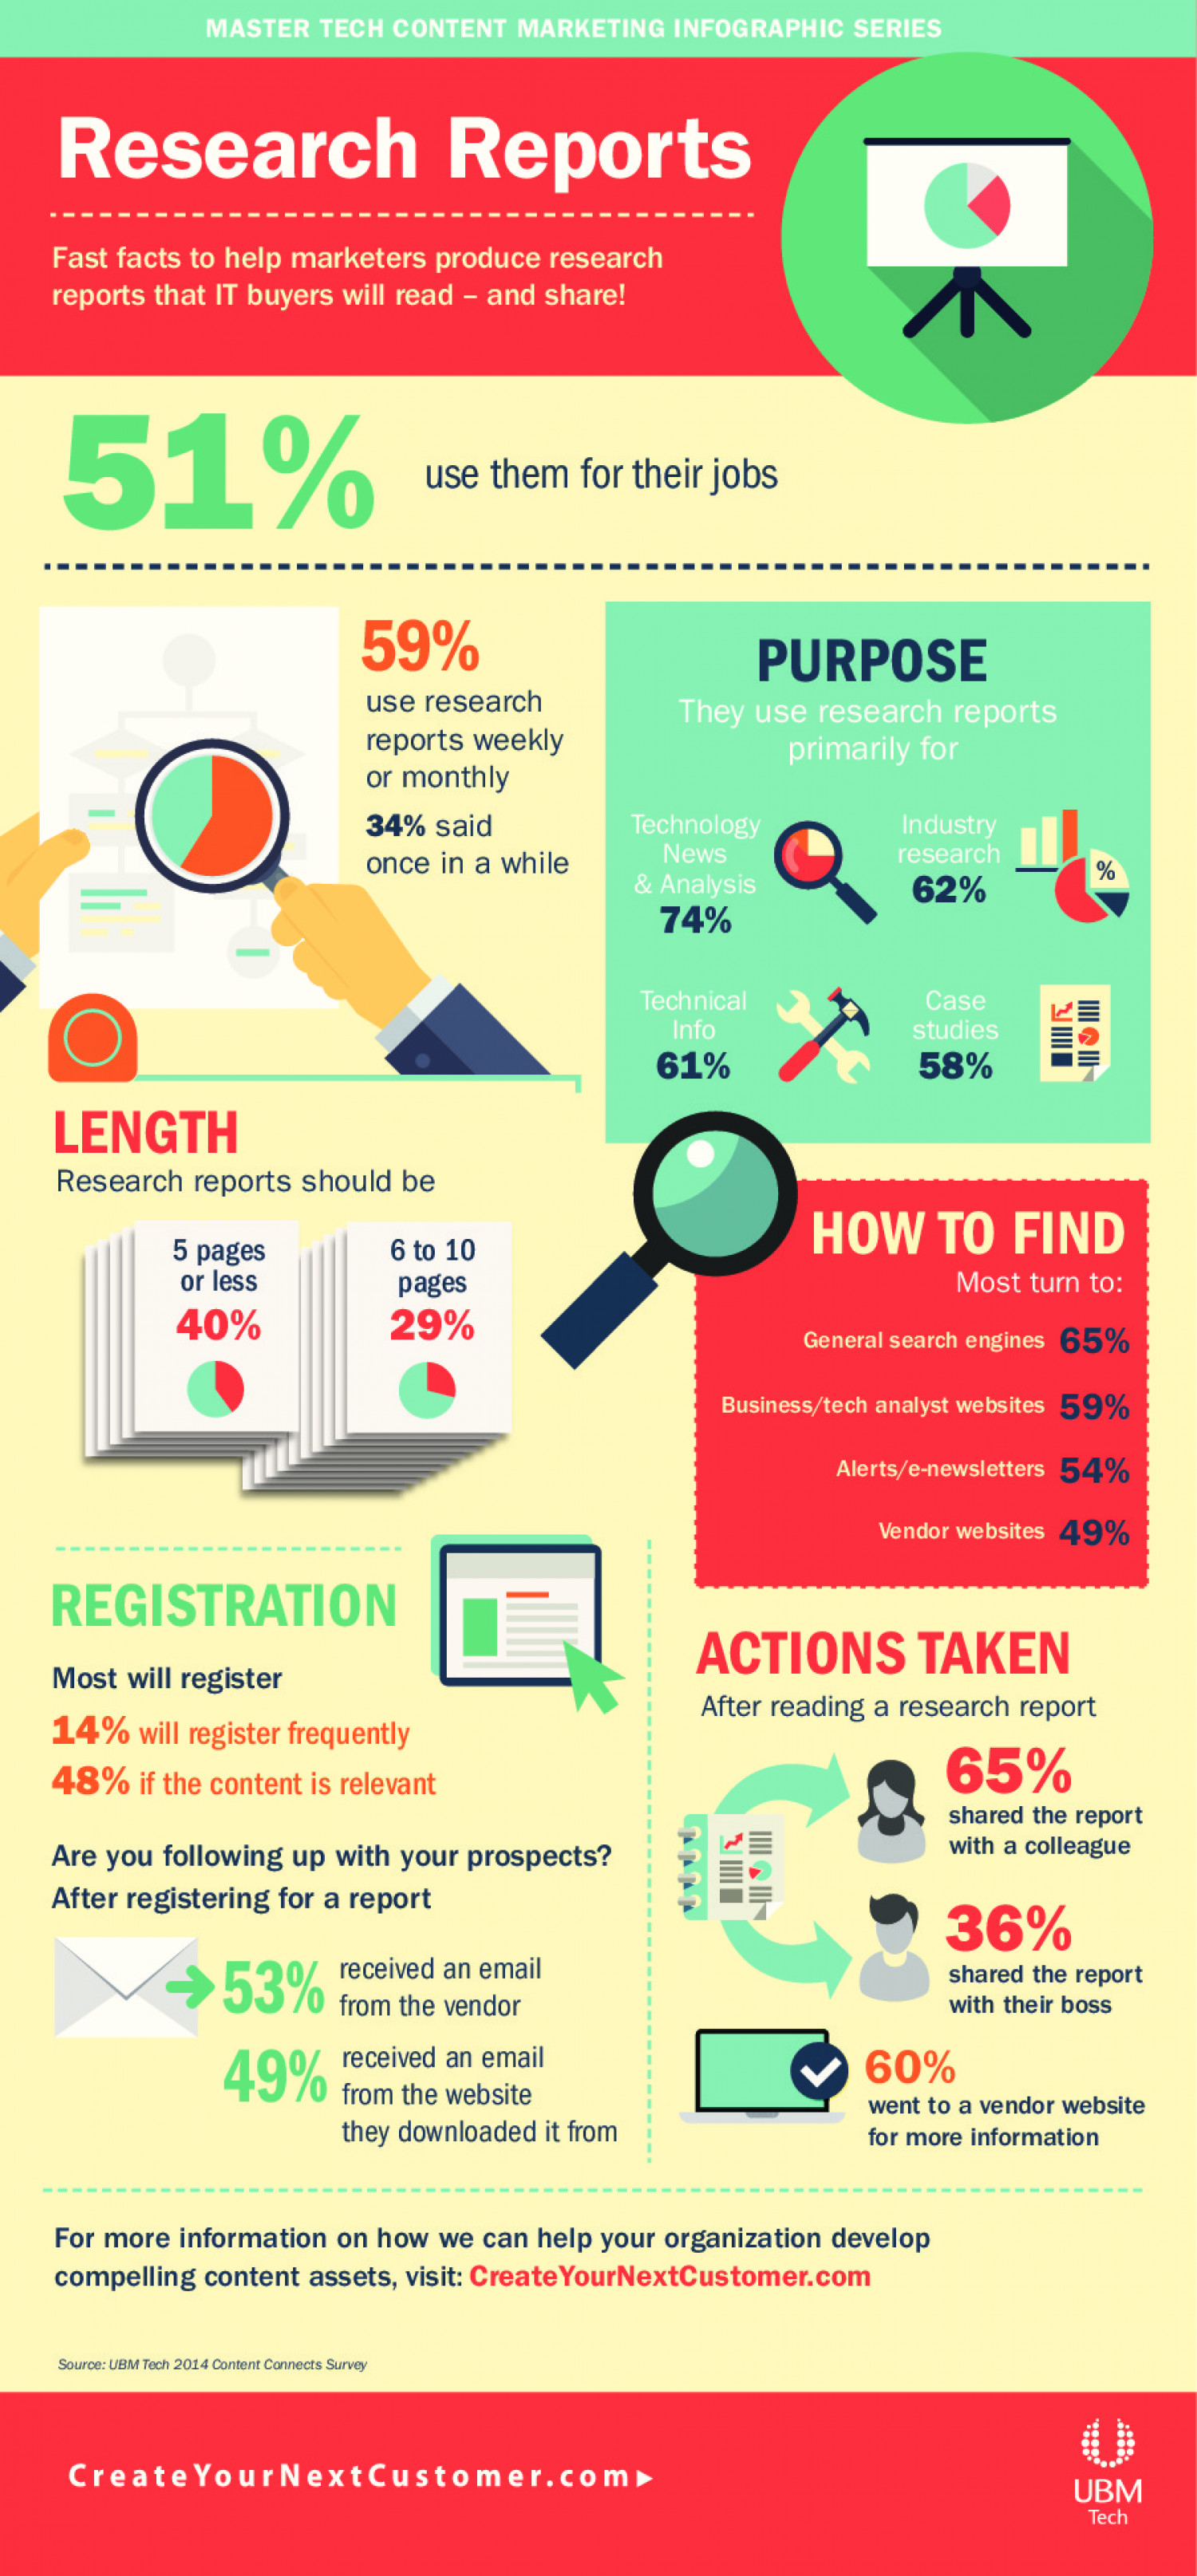 Master Tech Content Marketing Infographic Series: Research Reports Infographic